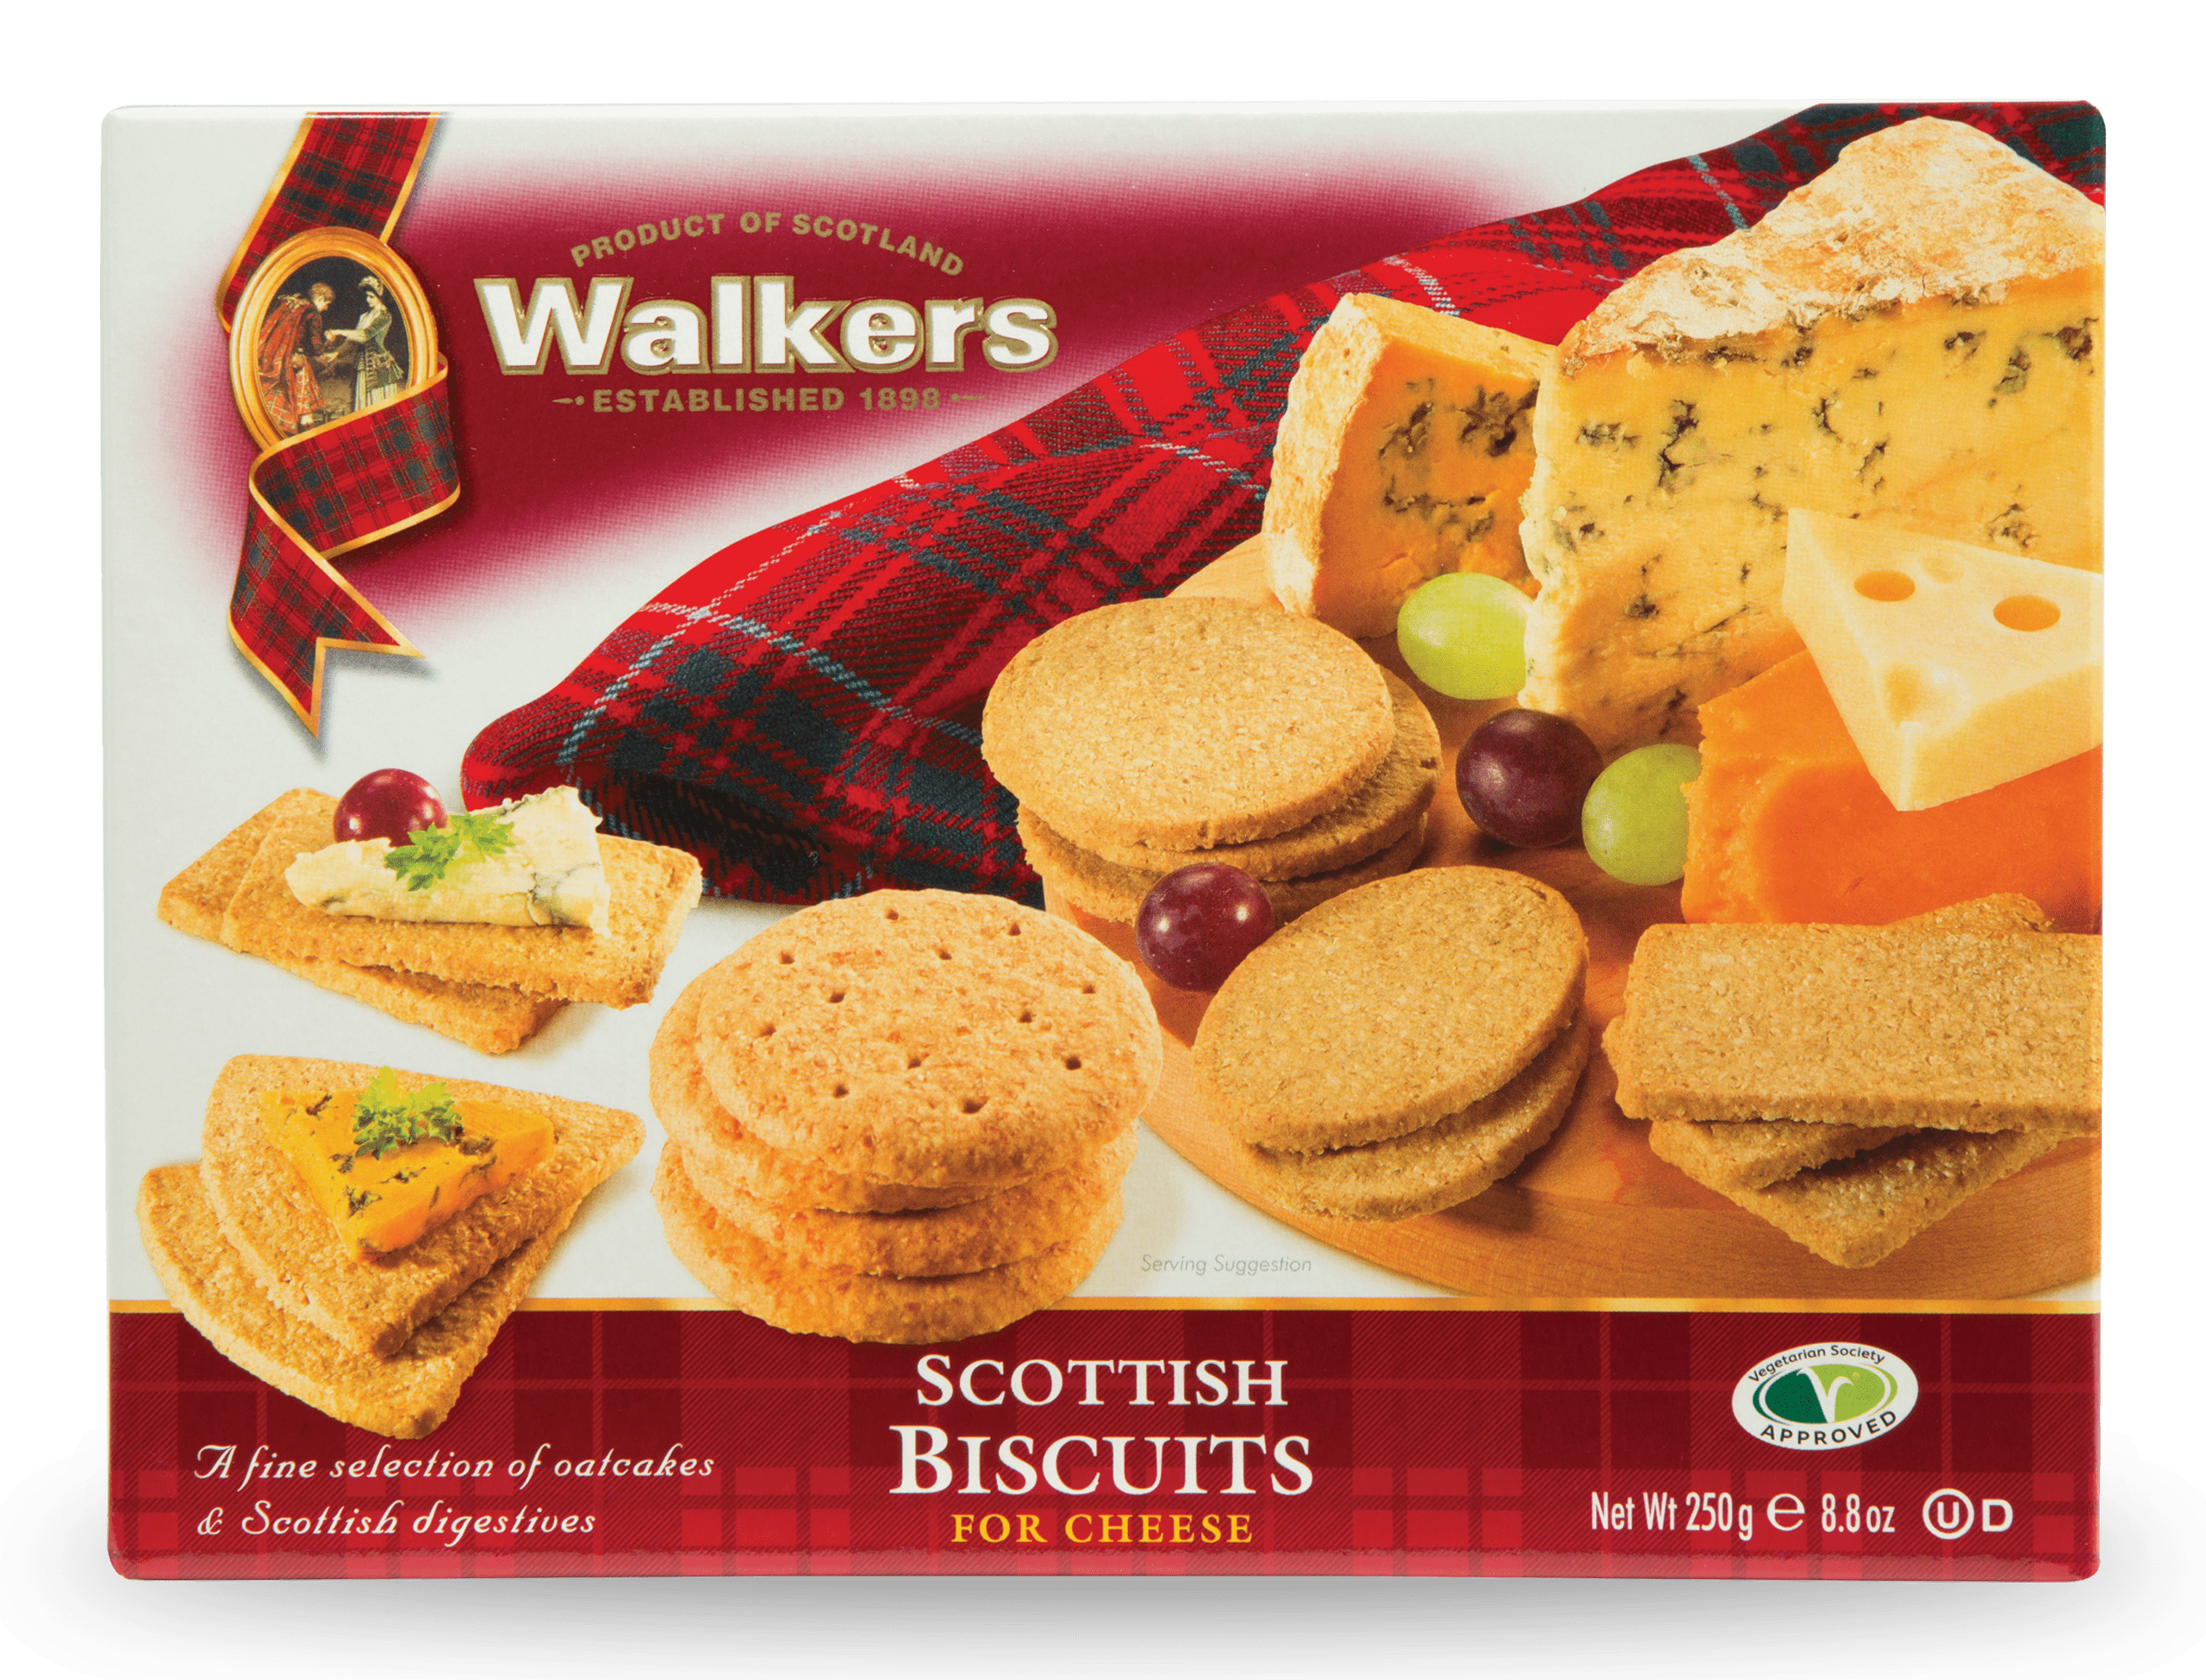 Scottish Biscuits for Cheese